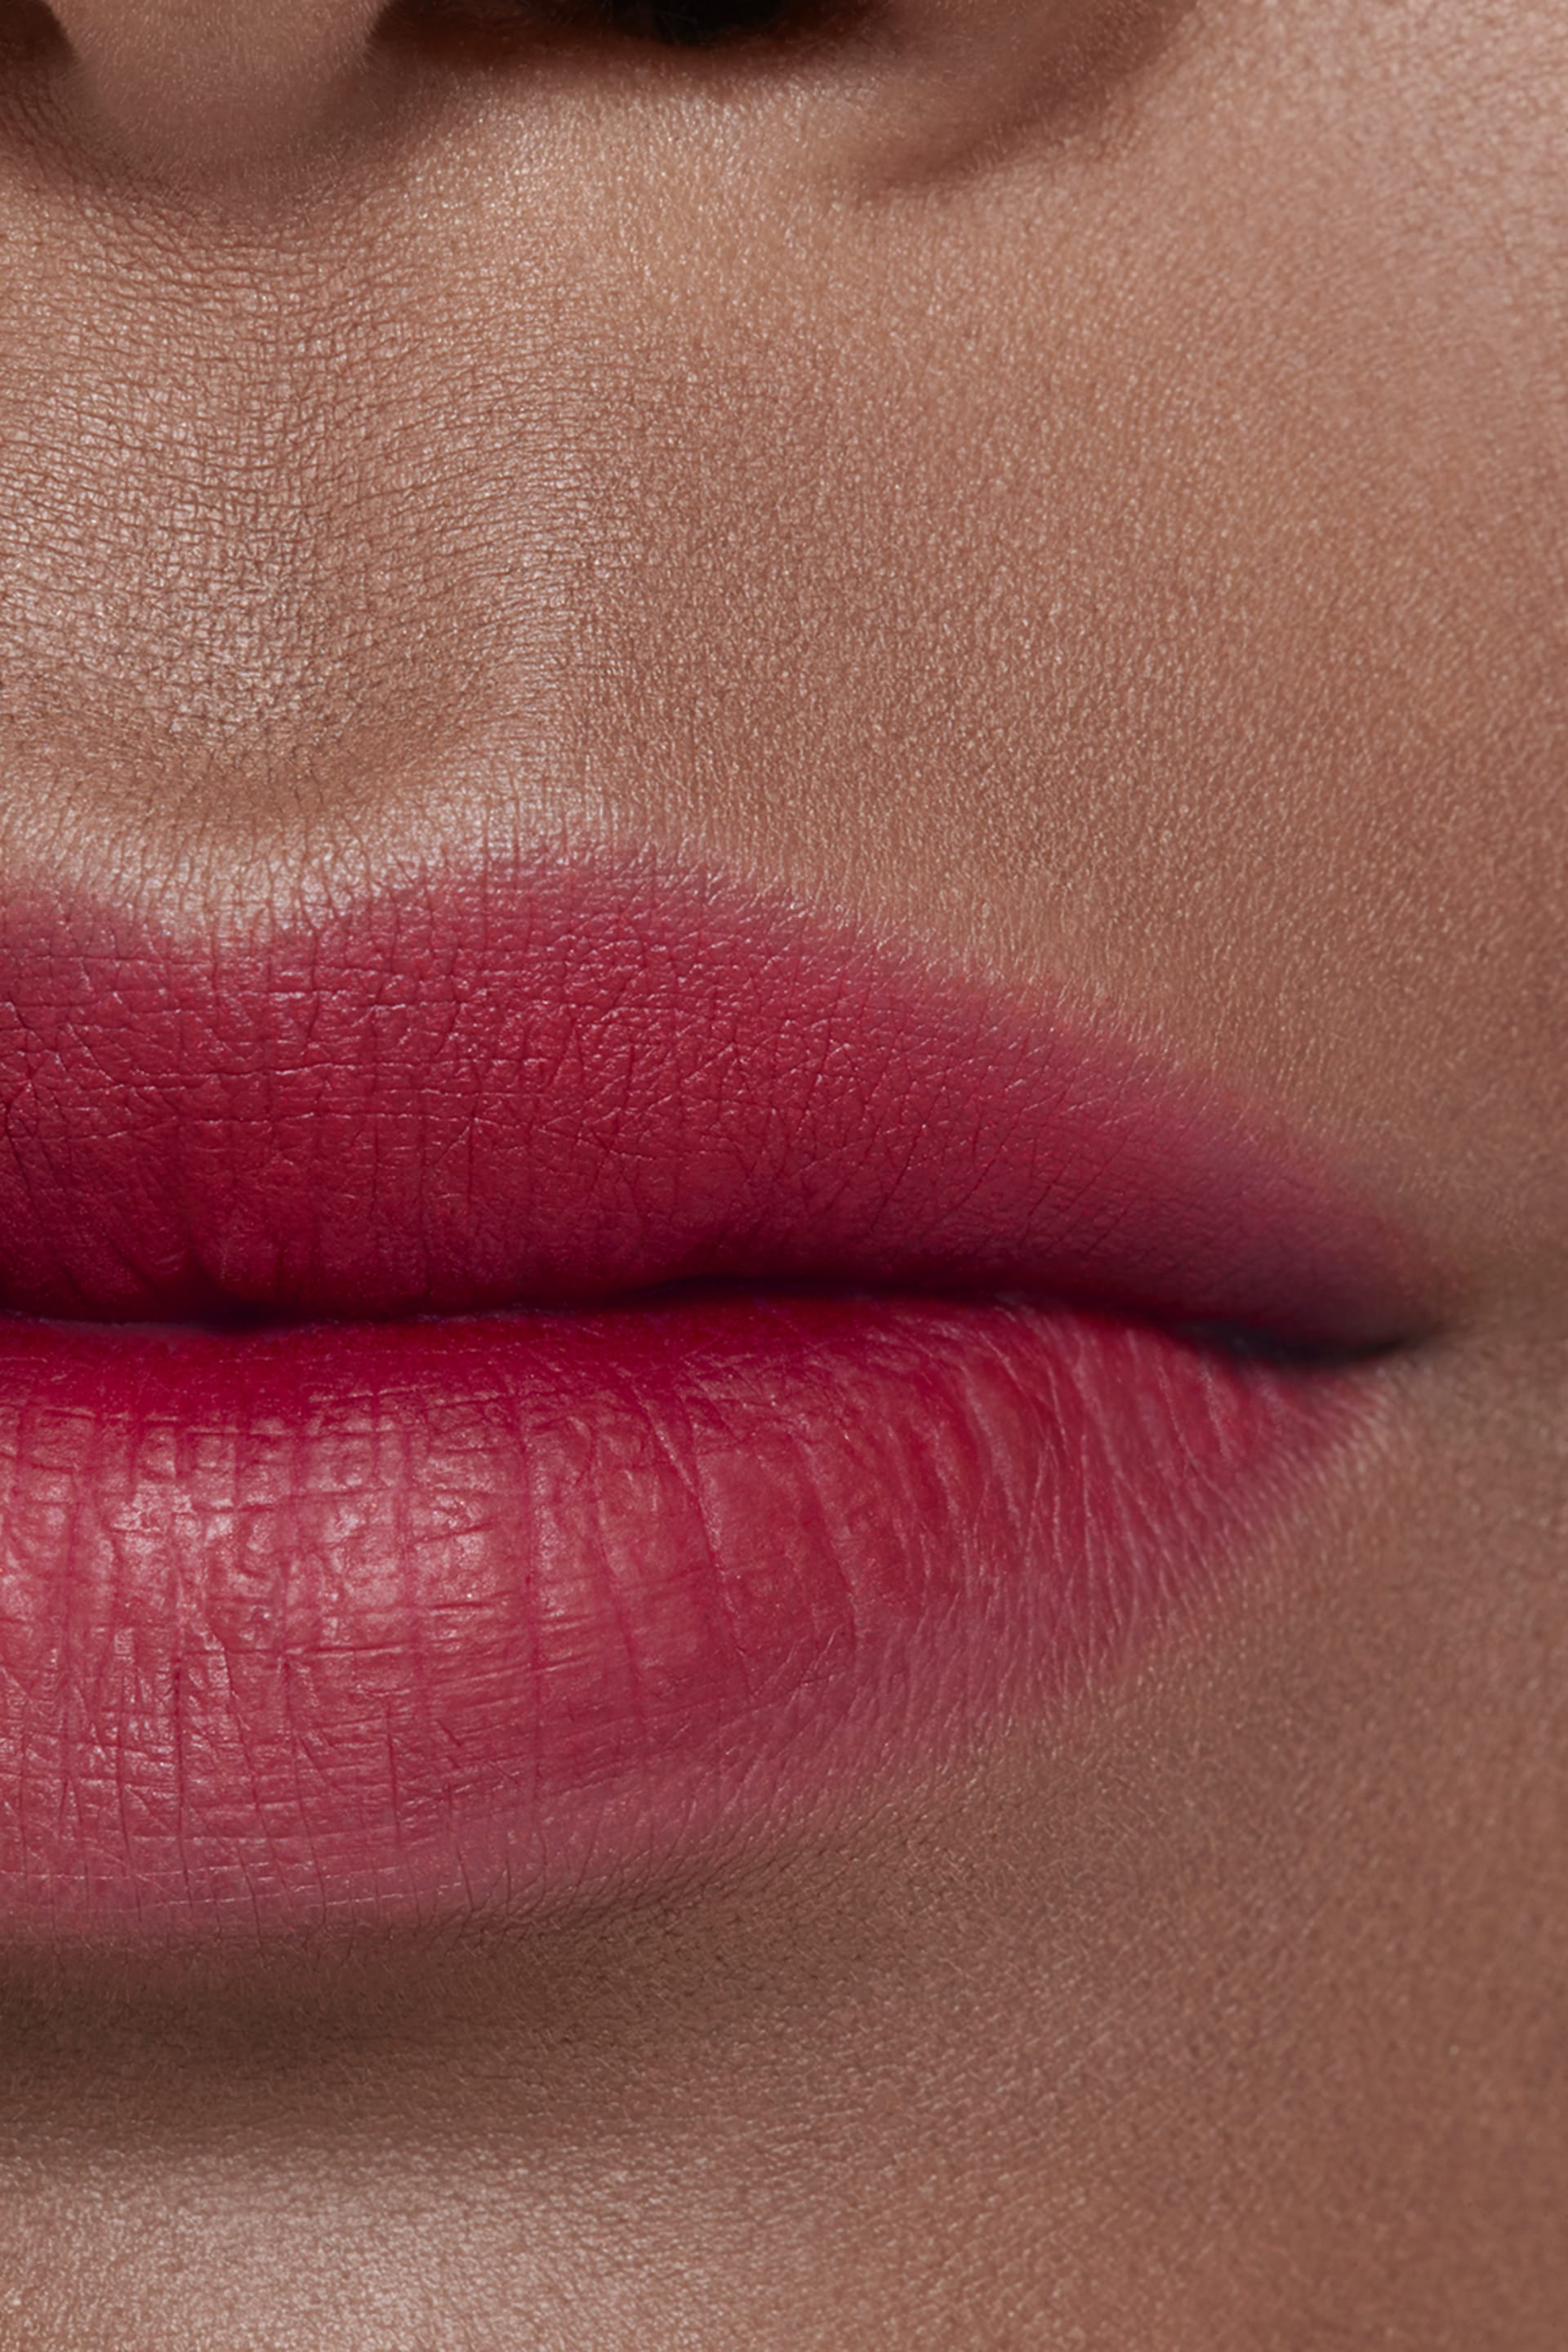 Application makeup visual 2 - ROUGE COCO LIP BLUSH 416 - TEASING PINK